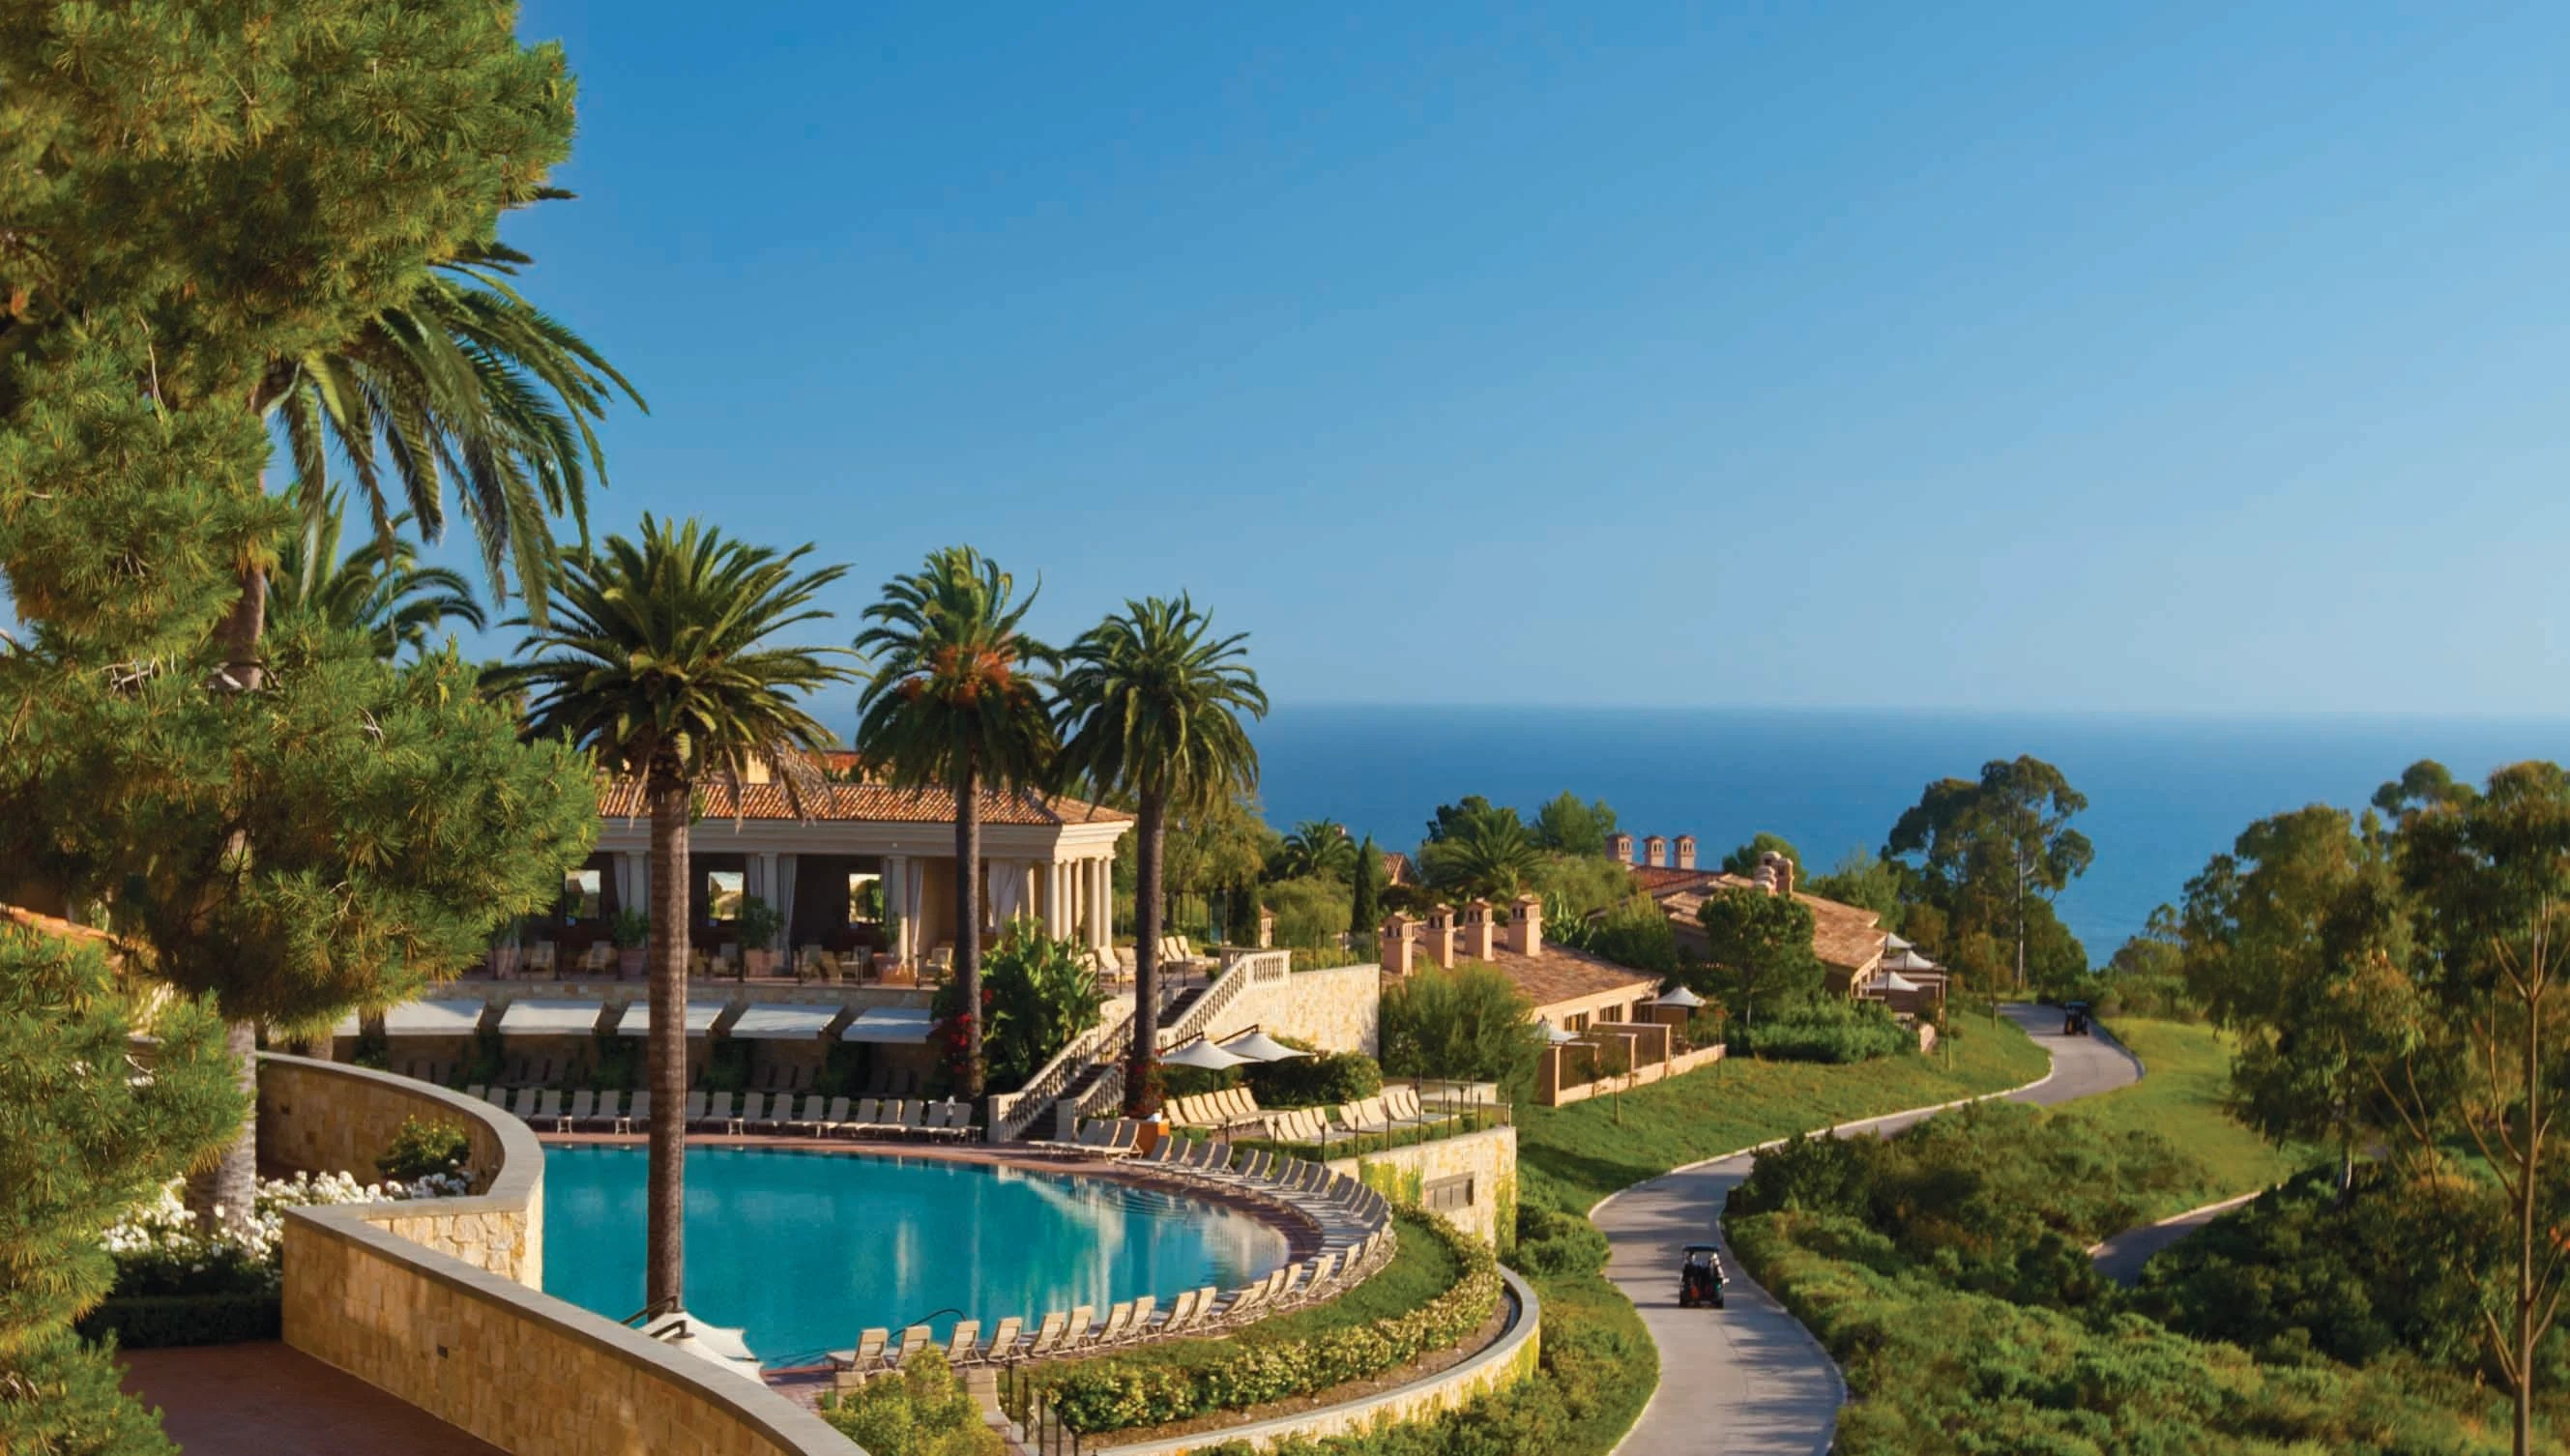 Adler Thermae Pelican Hill Earns Newport Beach's Only Forbes Travel